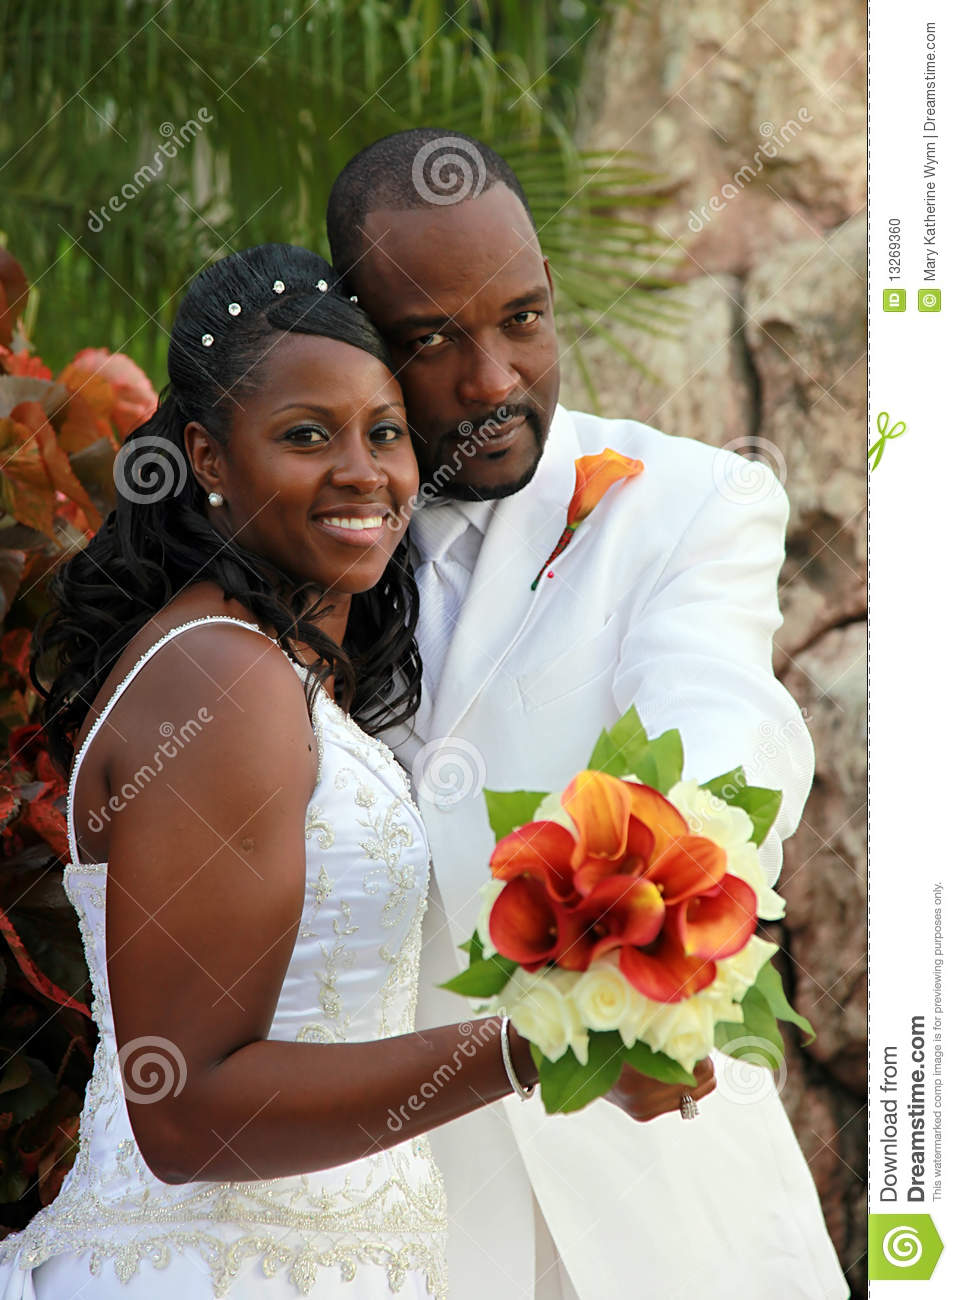 African American Wedding Couple Stock Photo Image 13269360